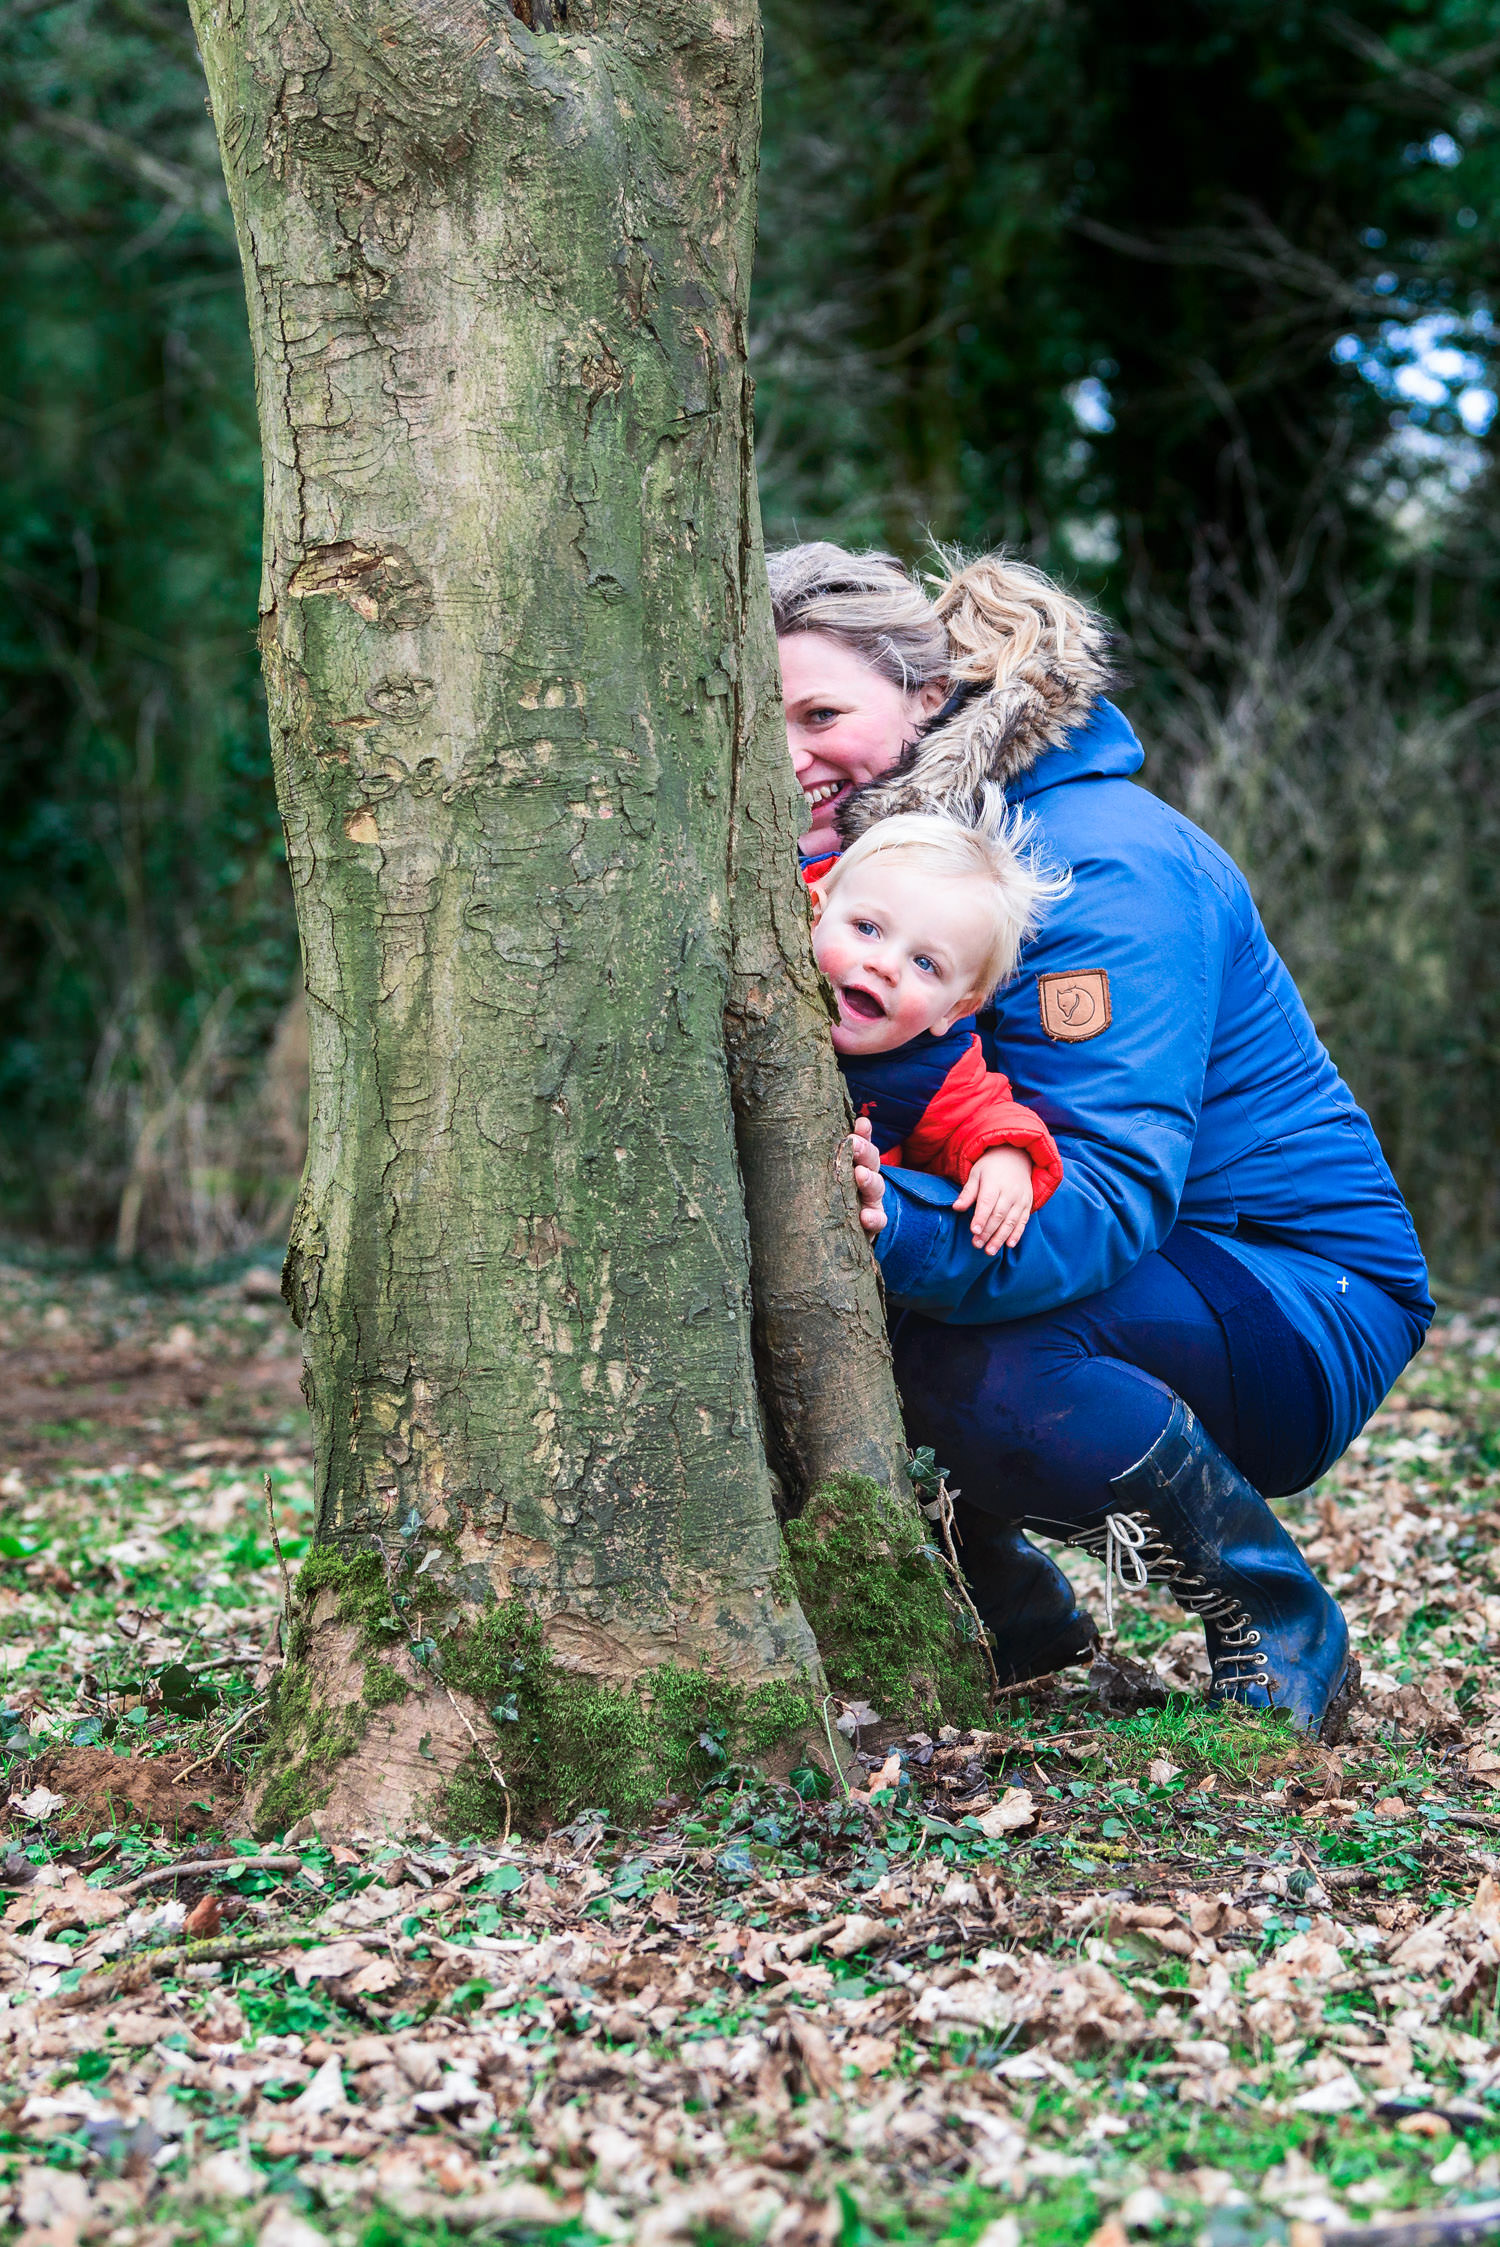 Mum and toddler hiding behind a tree at forest school